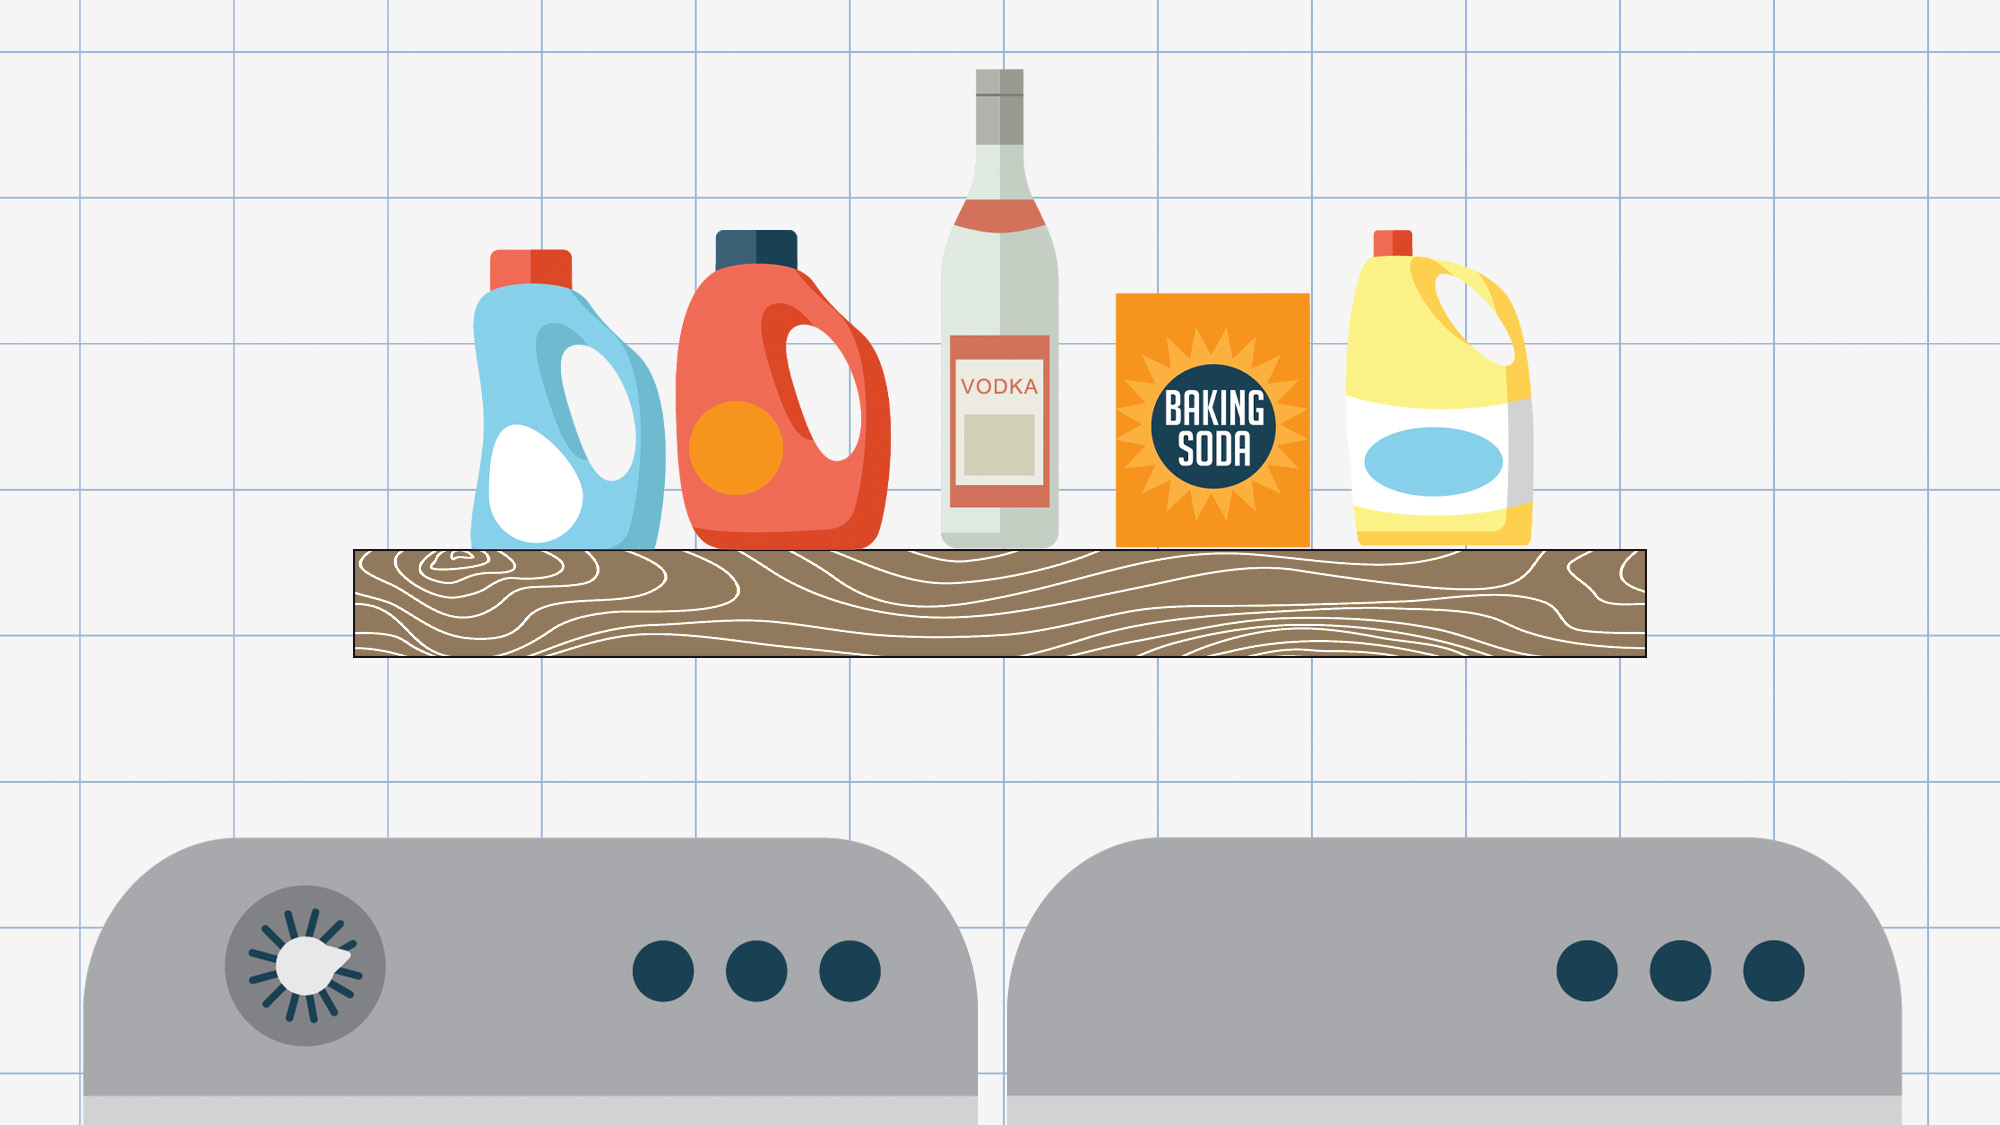 An illustration of a laundry room with a bottle of vodka sitting on the shelf with the detergents